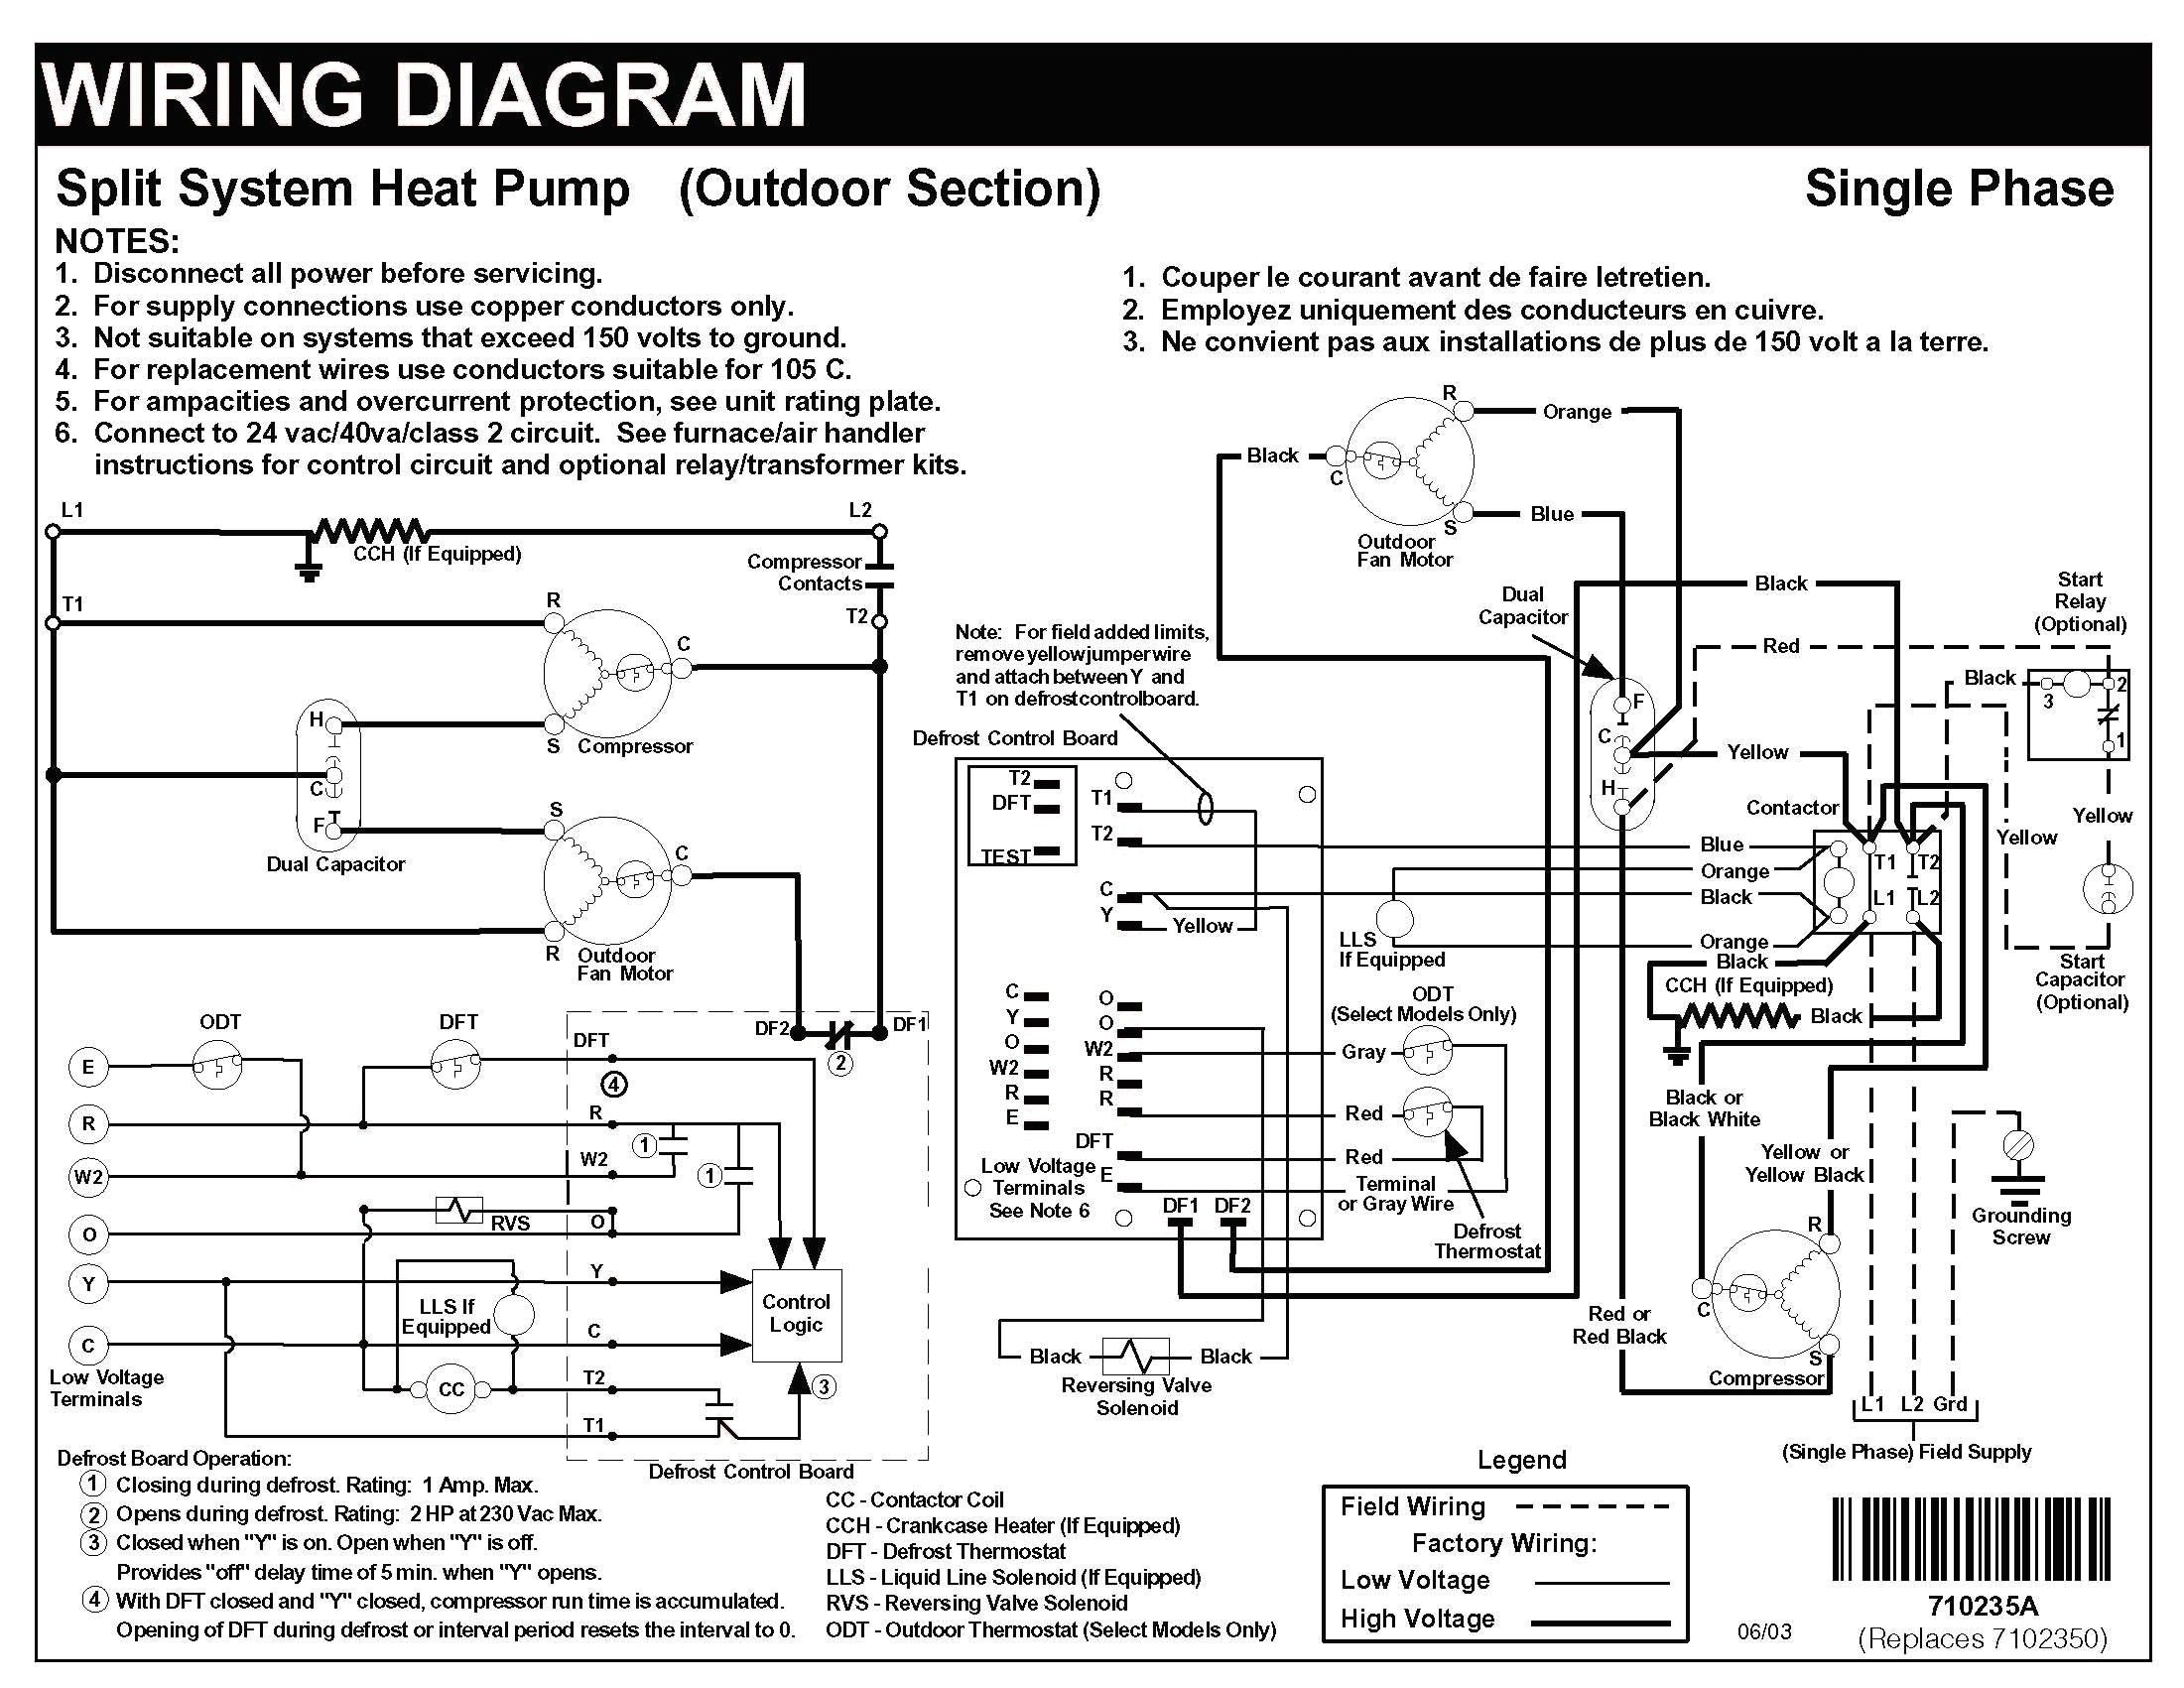 New Wiring Diagram For Ac Thermostat Thermostat Wiring House Wiring Electrical Layout